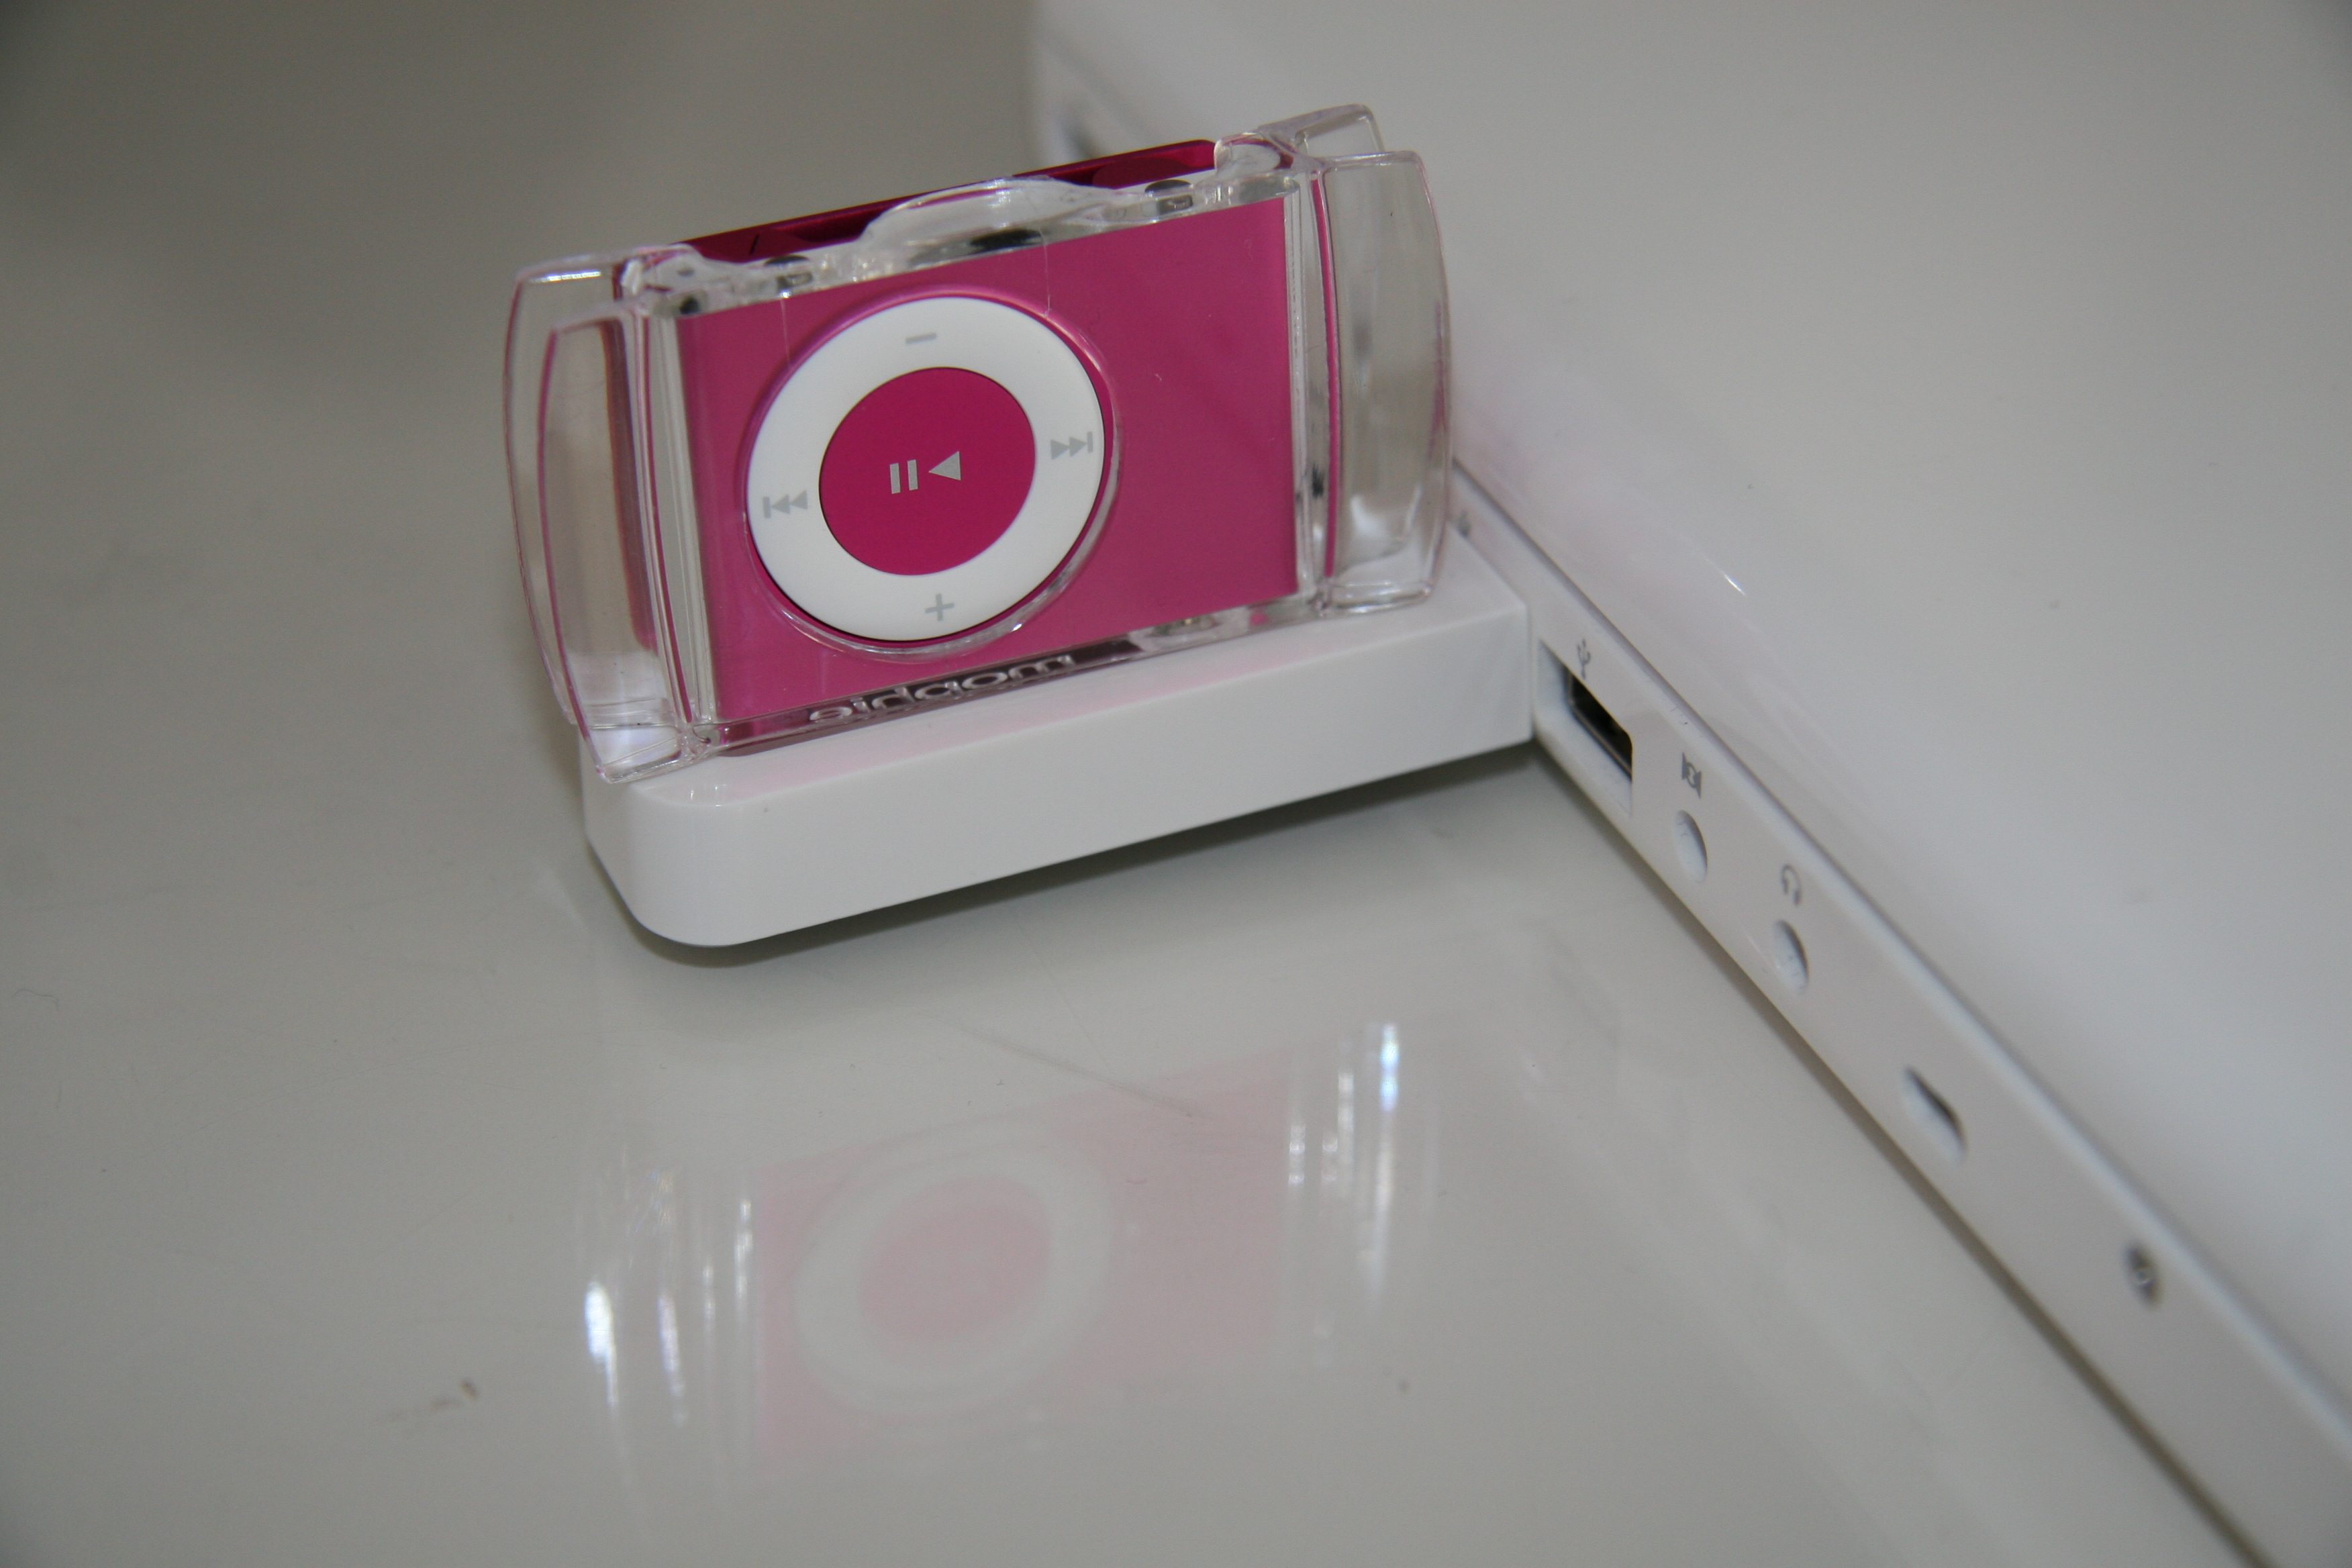 Geeksugar Tests The USB Travel Dock for iPod Shuffle